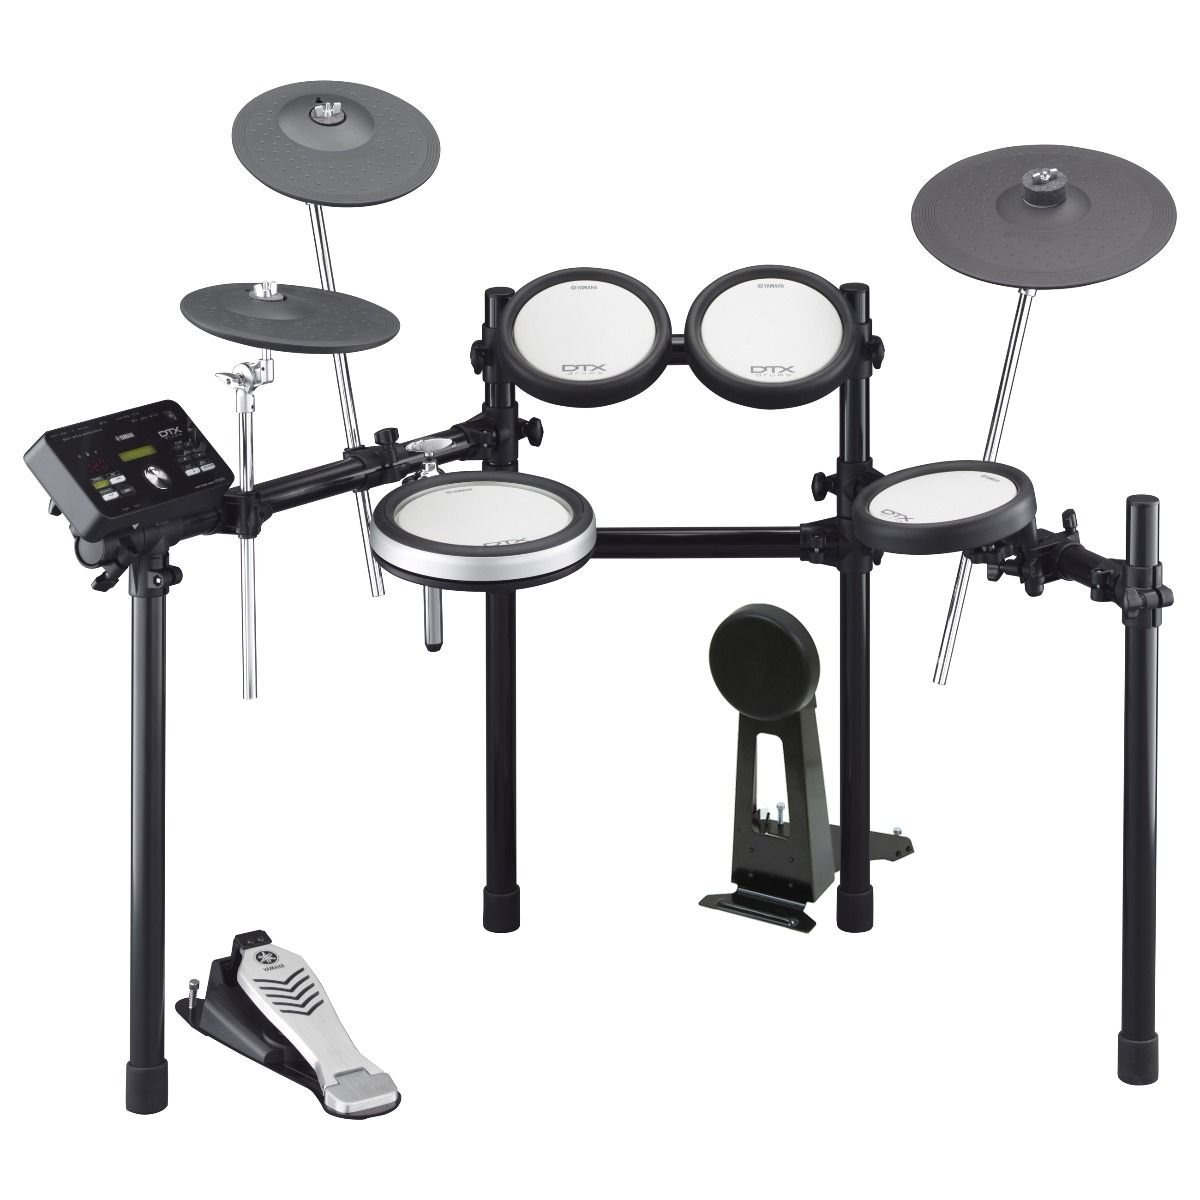 Yamaha DTX542K Electronic Drums w/ DTP542 Drum Pads, Cymbals XP80 Drum Pad DMR502 Rack System and TPCL500 Tom Holder (with Clamp)